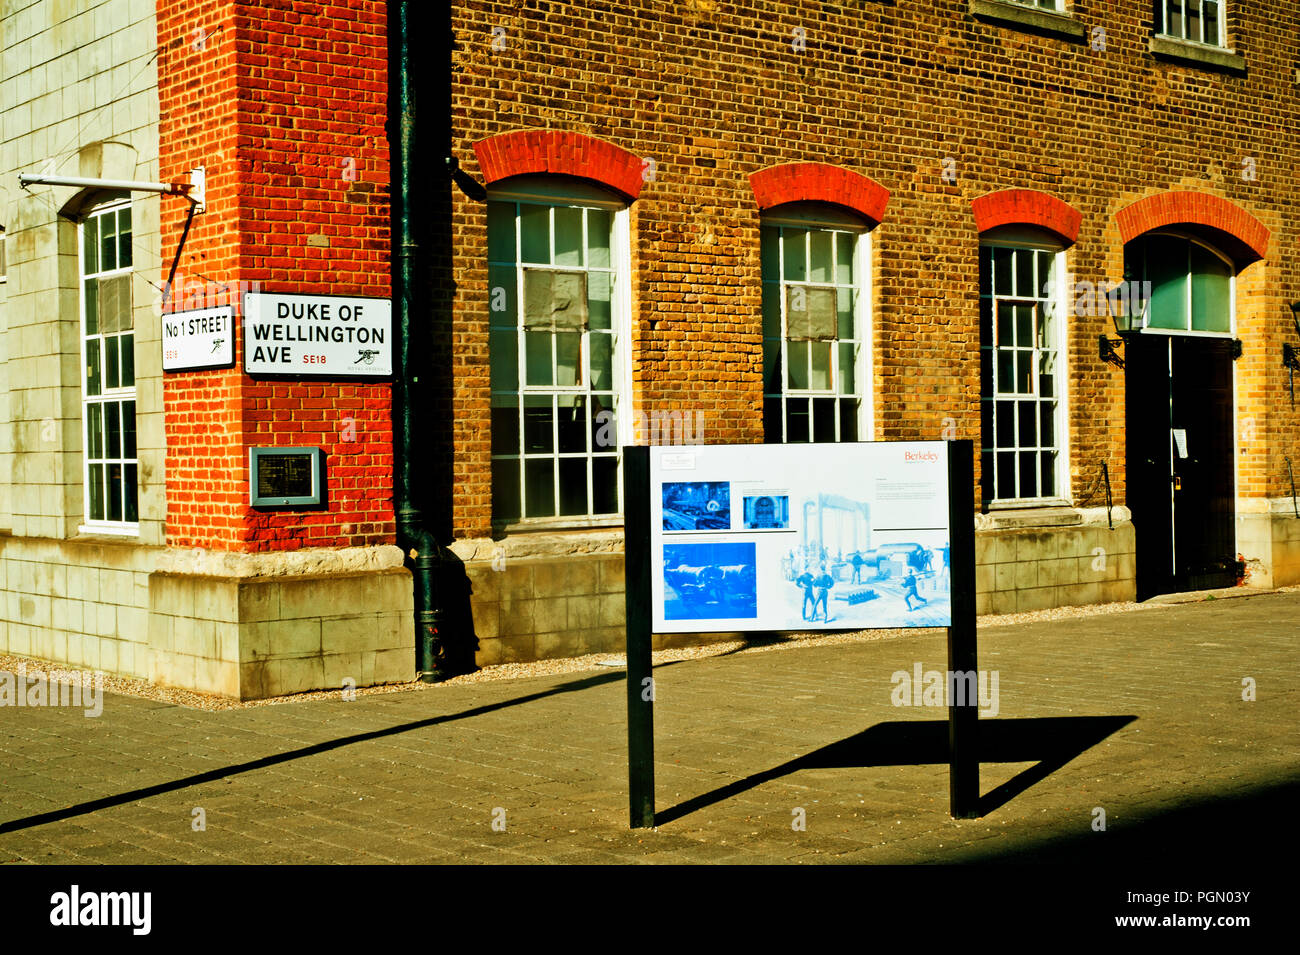 No 1 Street and Duke of Wellington Avenue, Royal Arsenal Riverside, Woolwich Arsenal, London, England - Stock Image